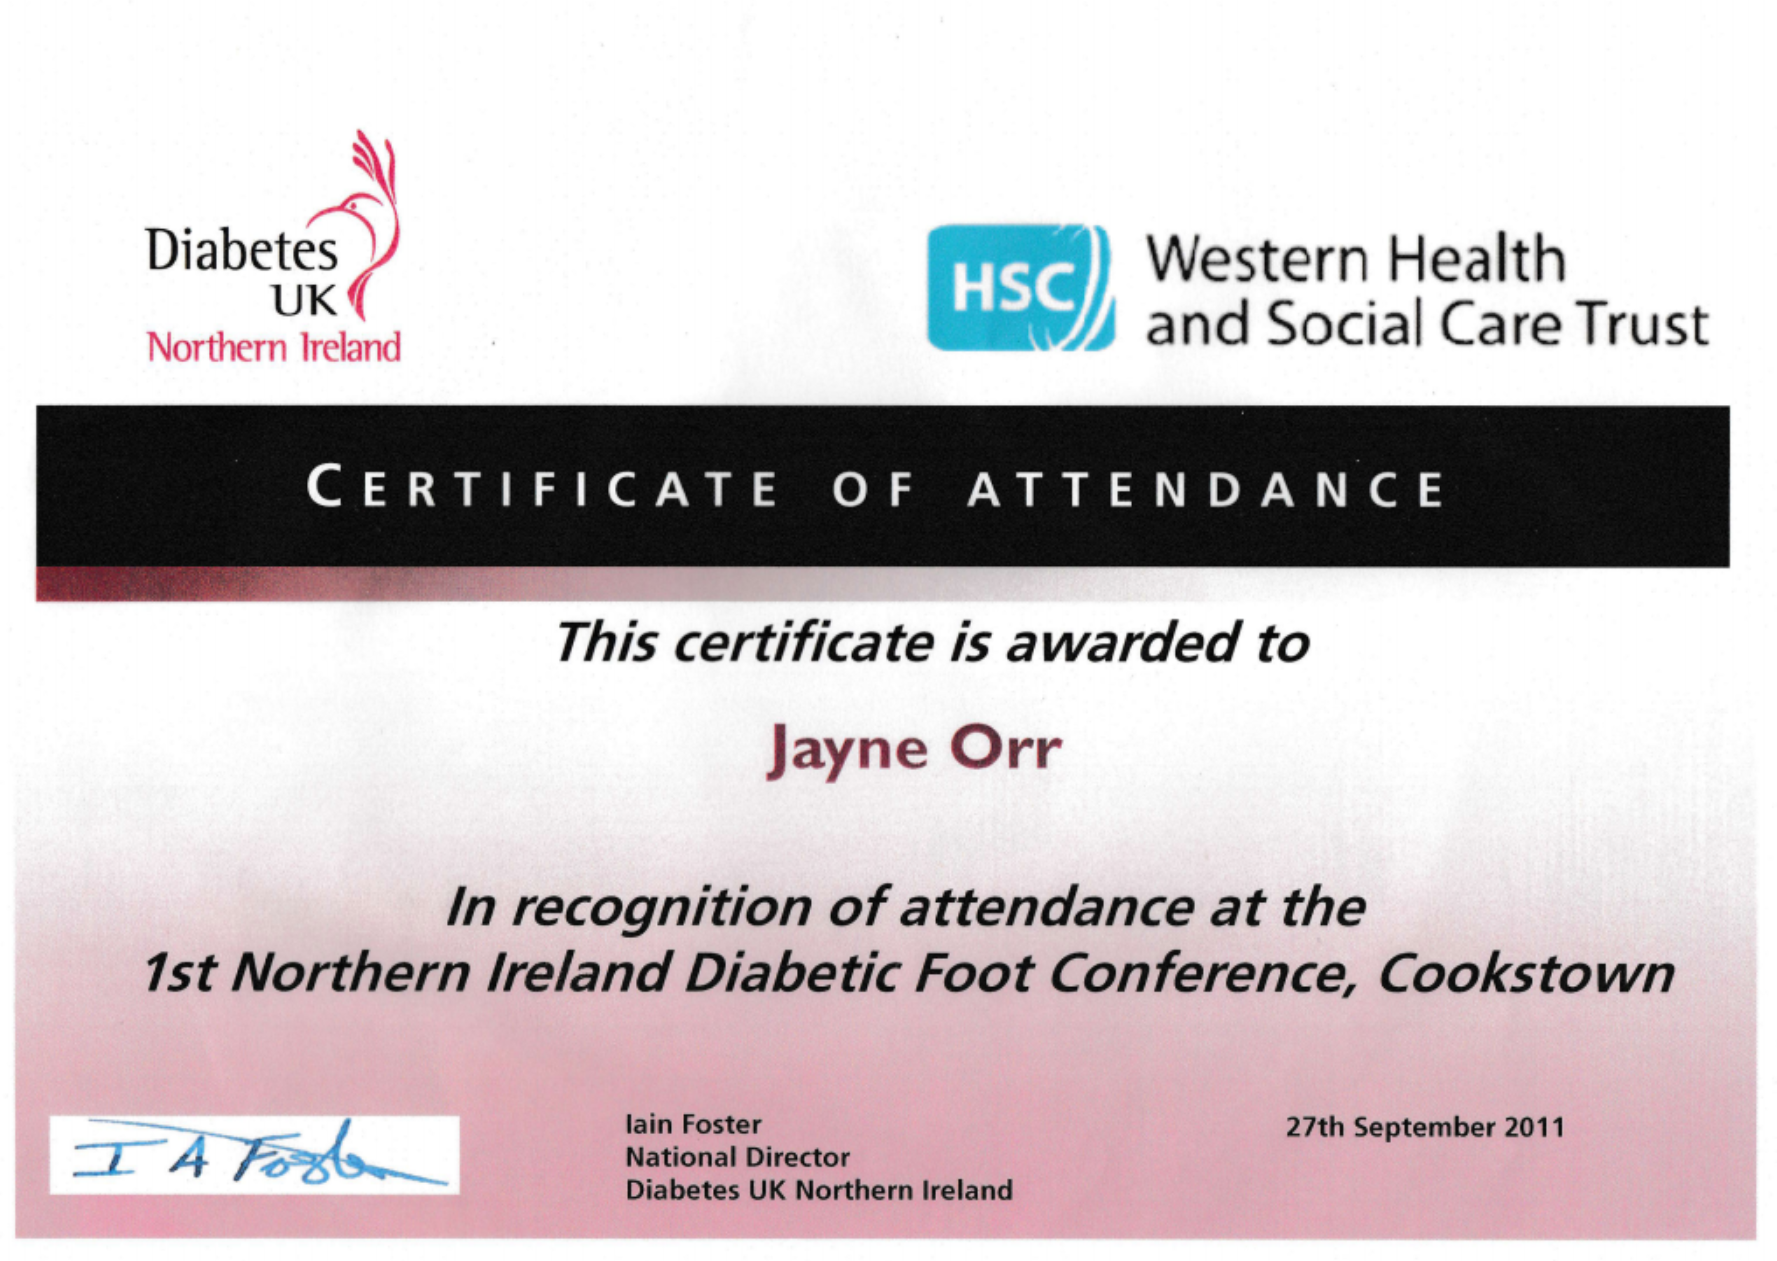 Certificate awarded to Jayne Orr for attending the first Northern Ireland Diabetic Foot Conference in Cookstown